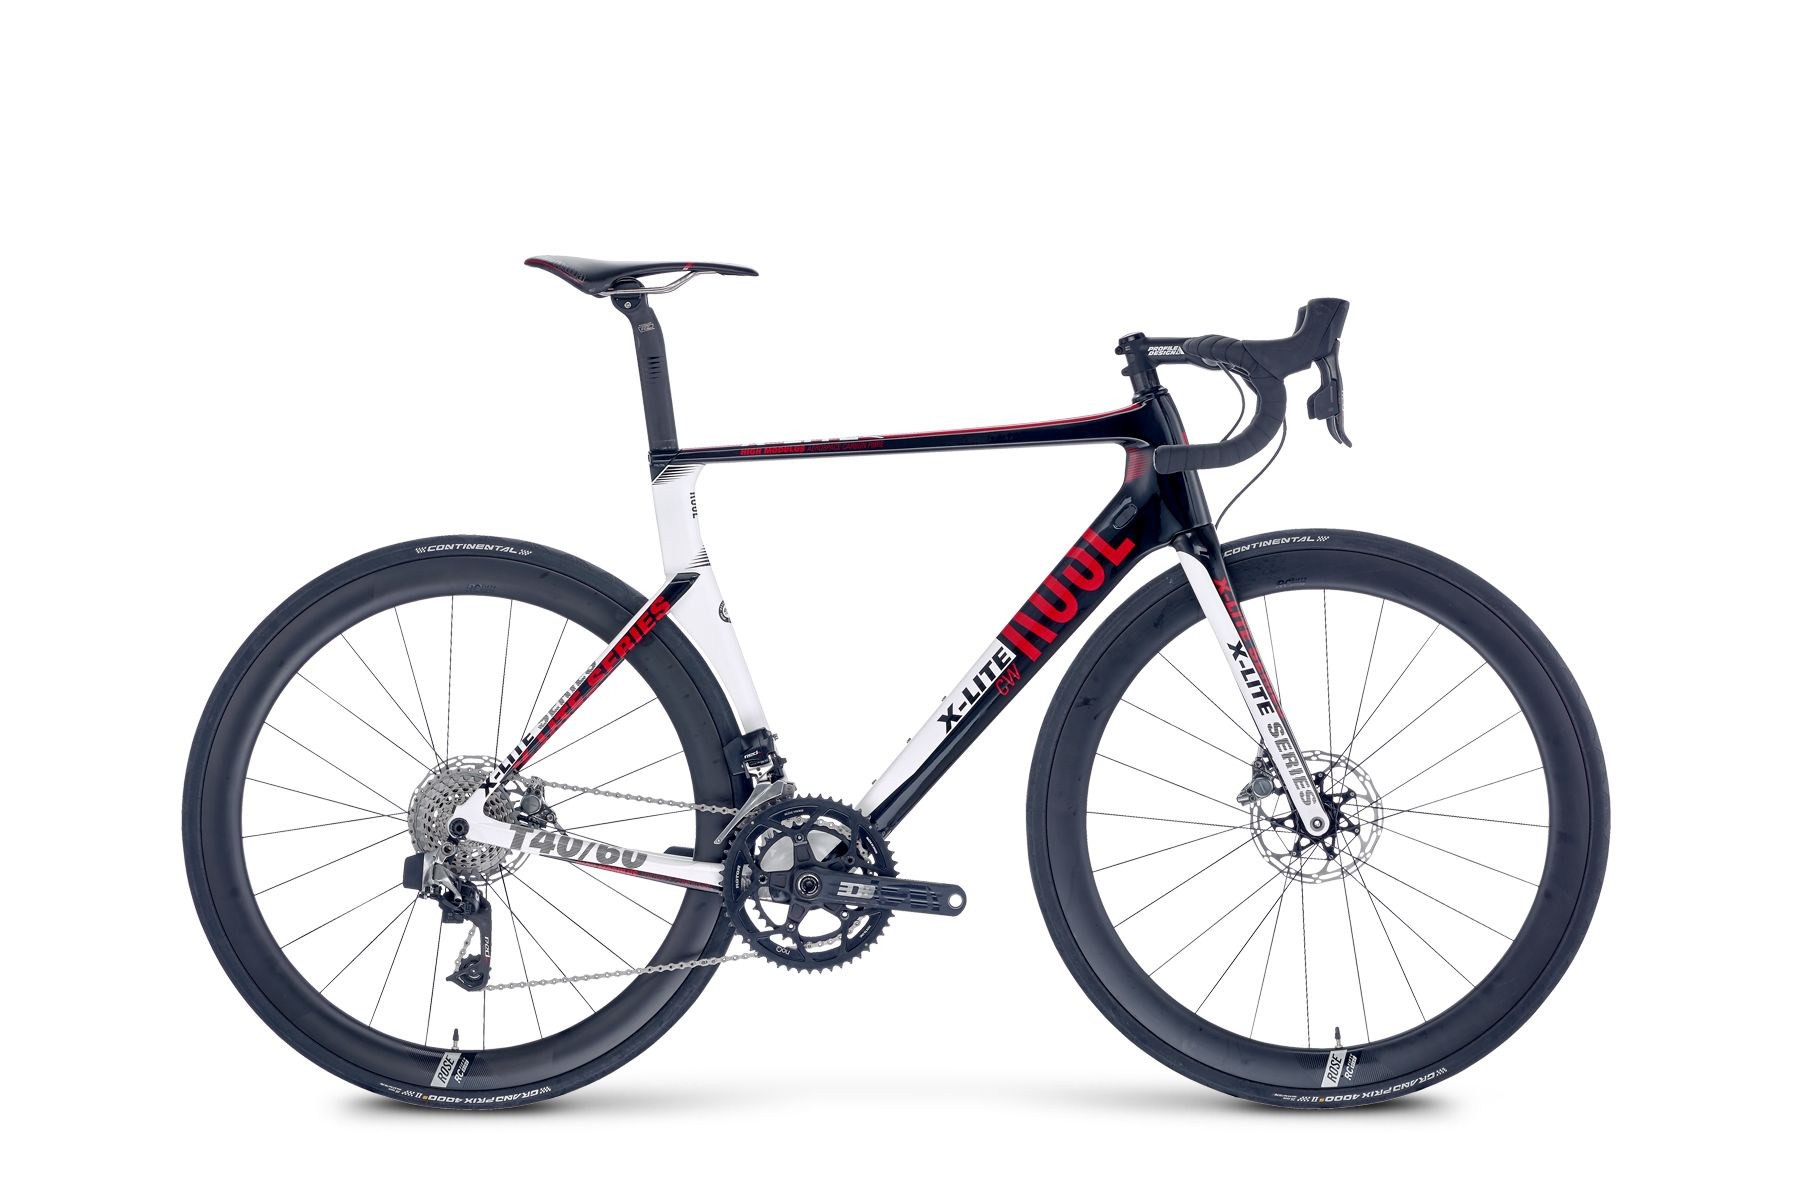 X-LITE CWX SRAM RED eTap second-hand bike size: 57cm